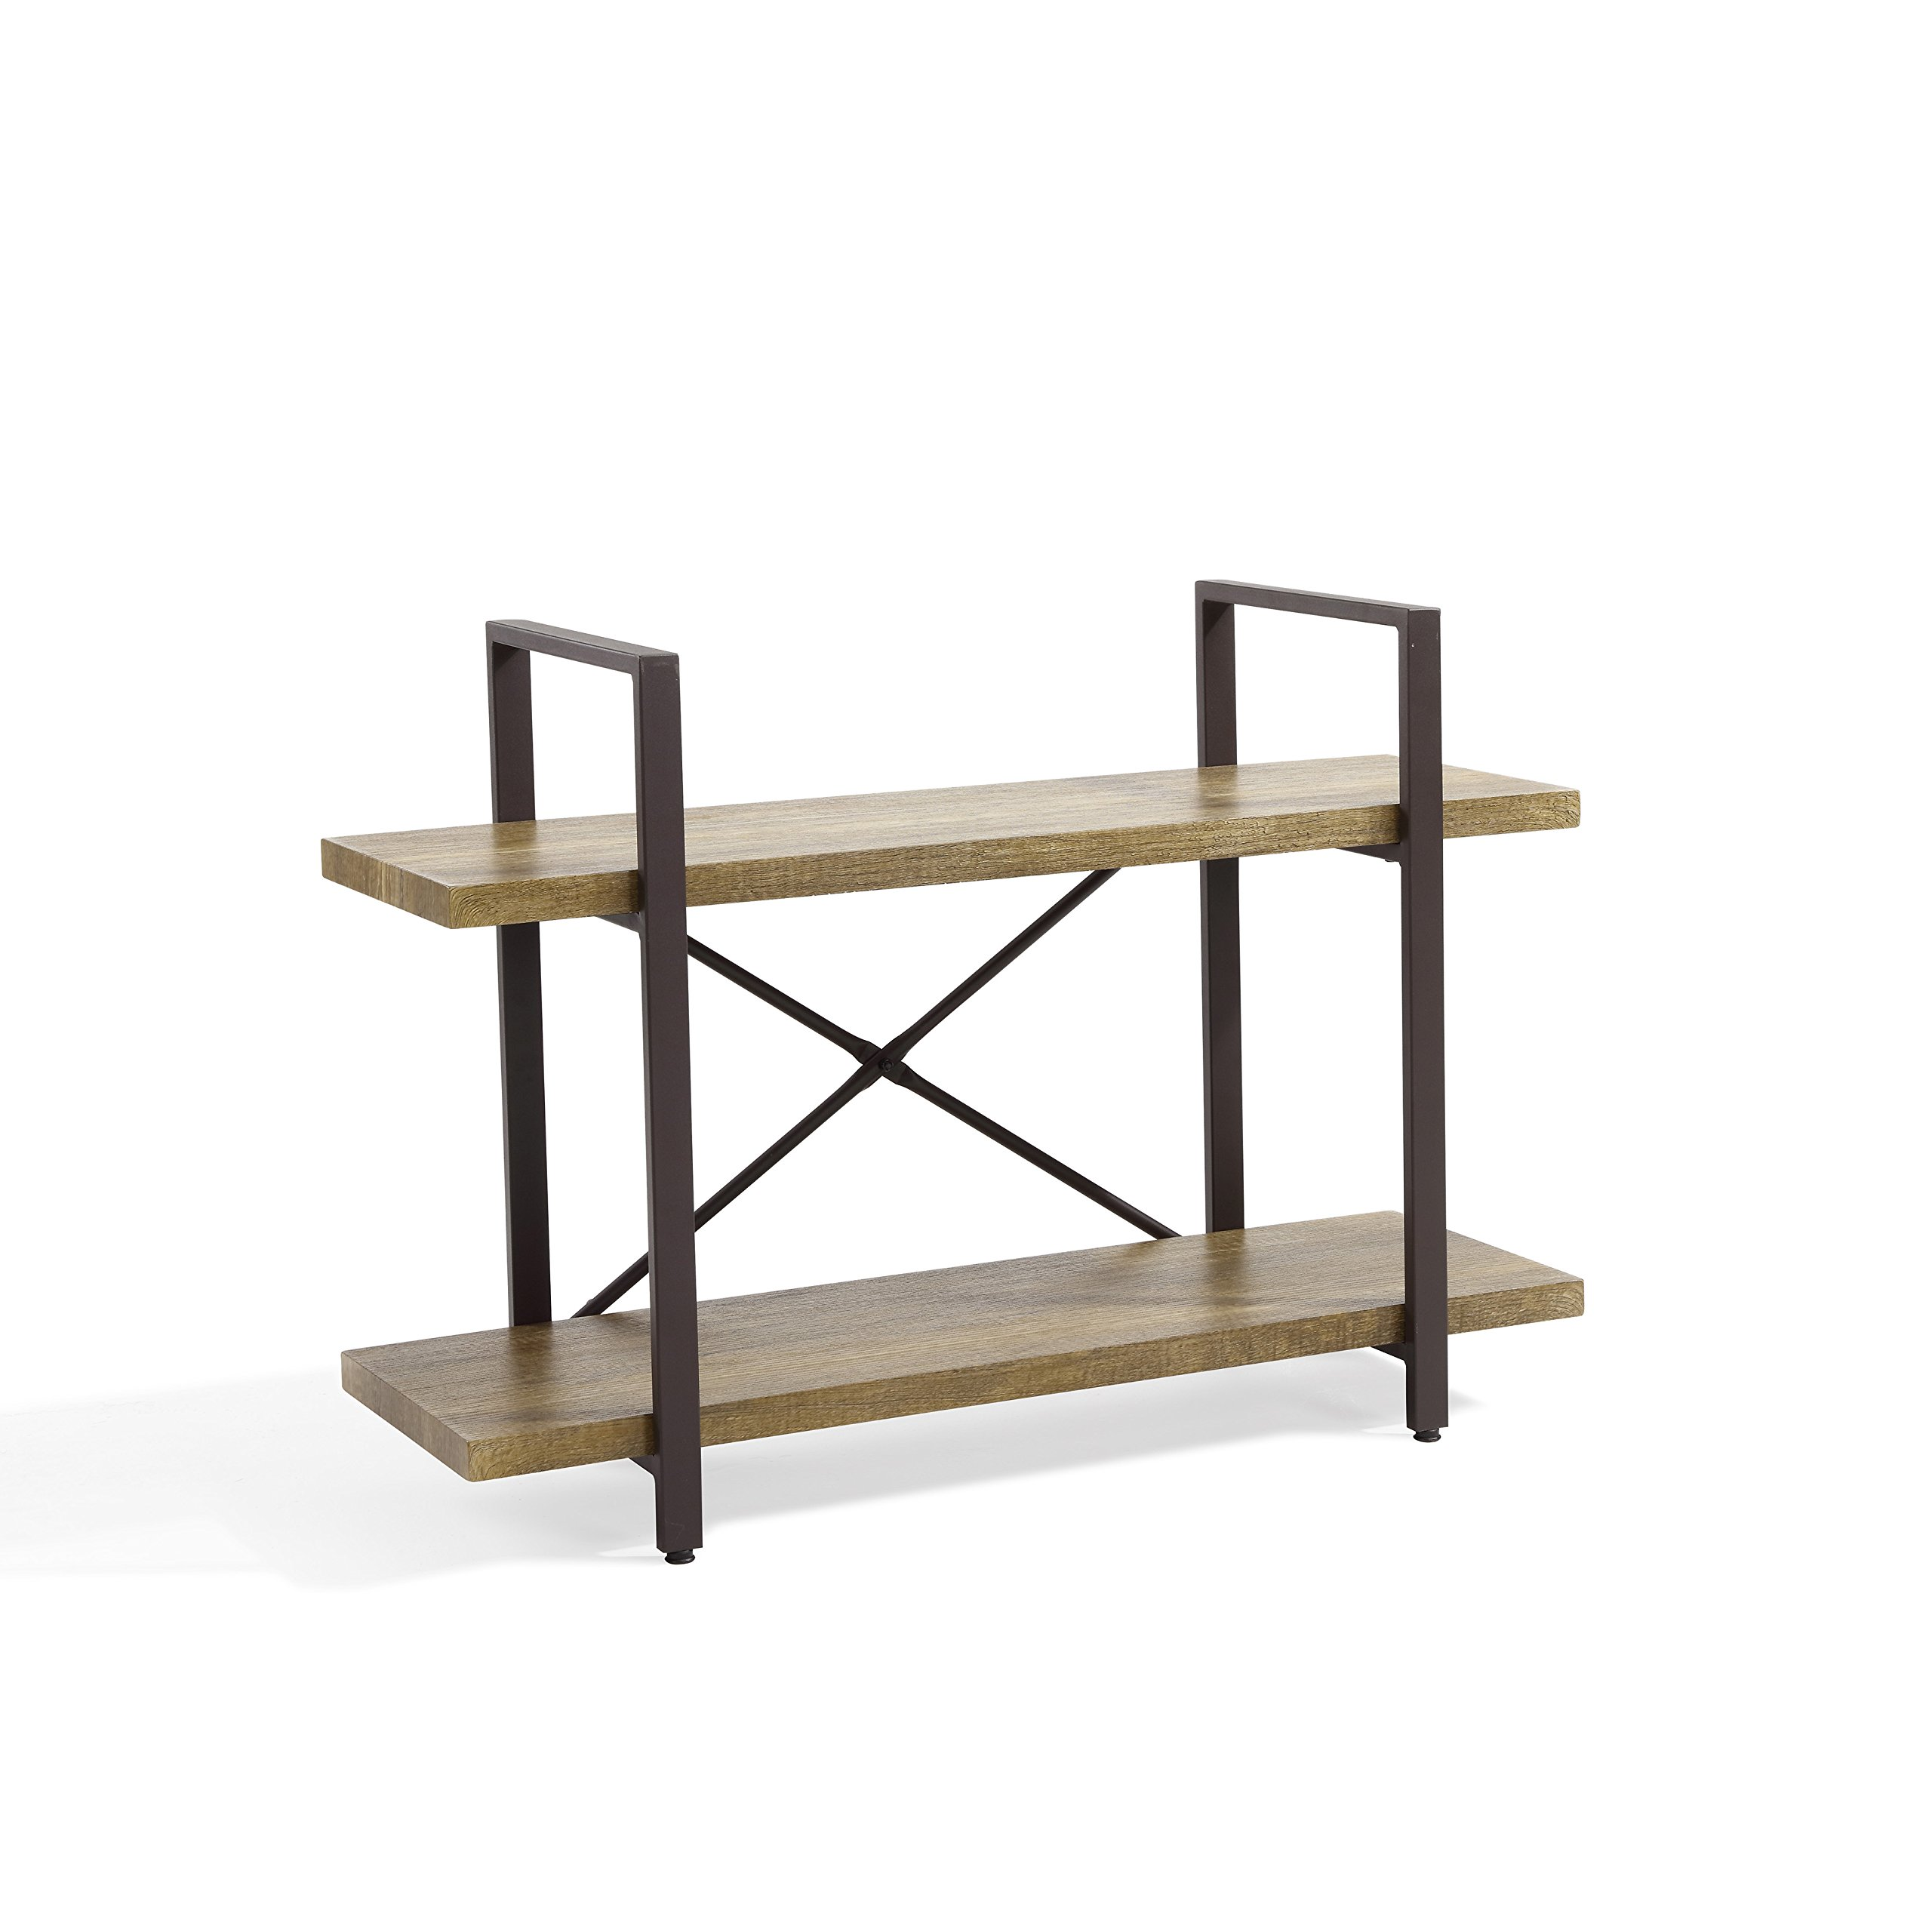 Danya B GH092 Decorative 2-Tier Rustic Bookcase with Metal Frame – Brown